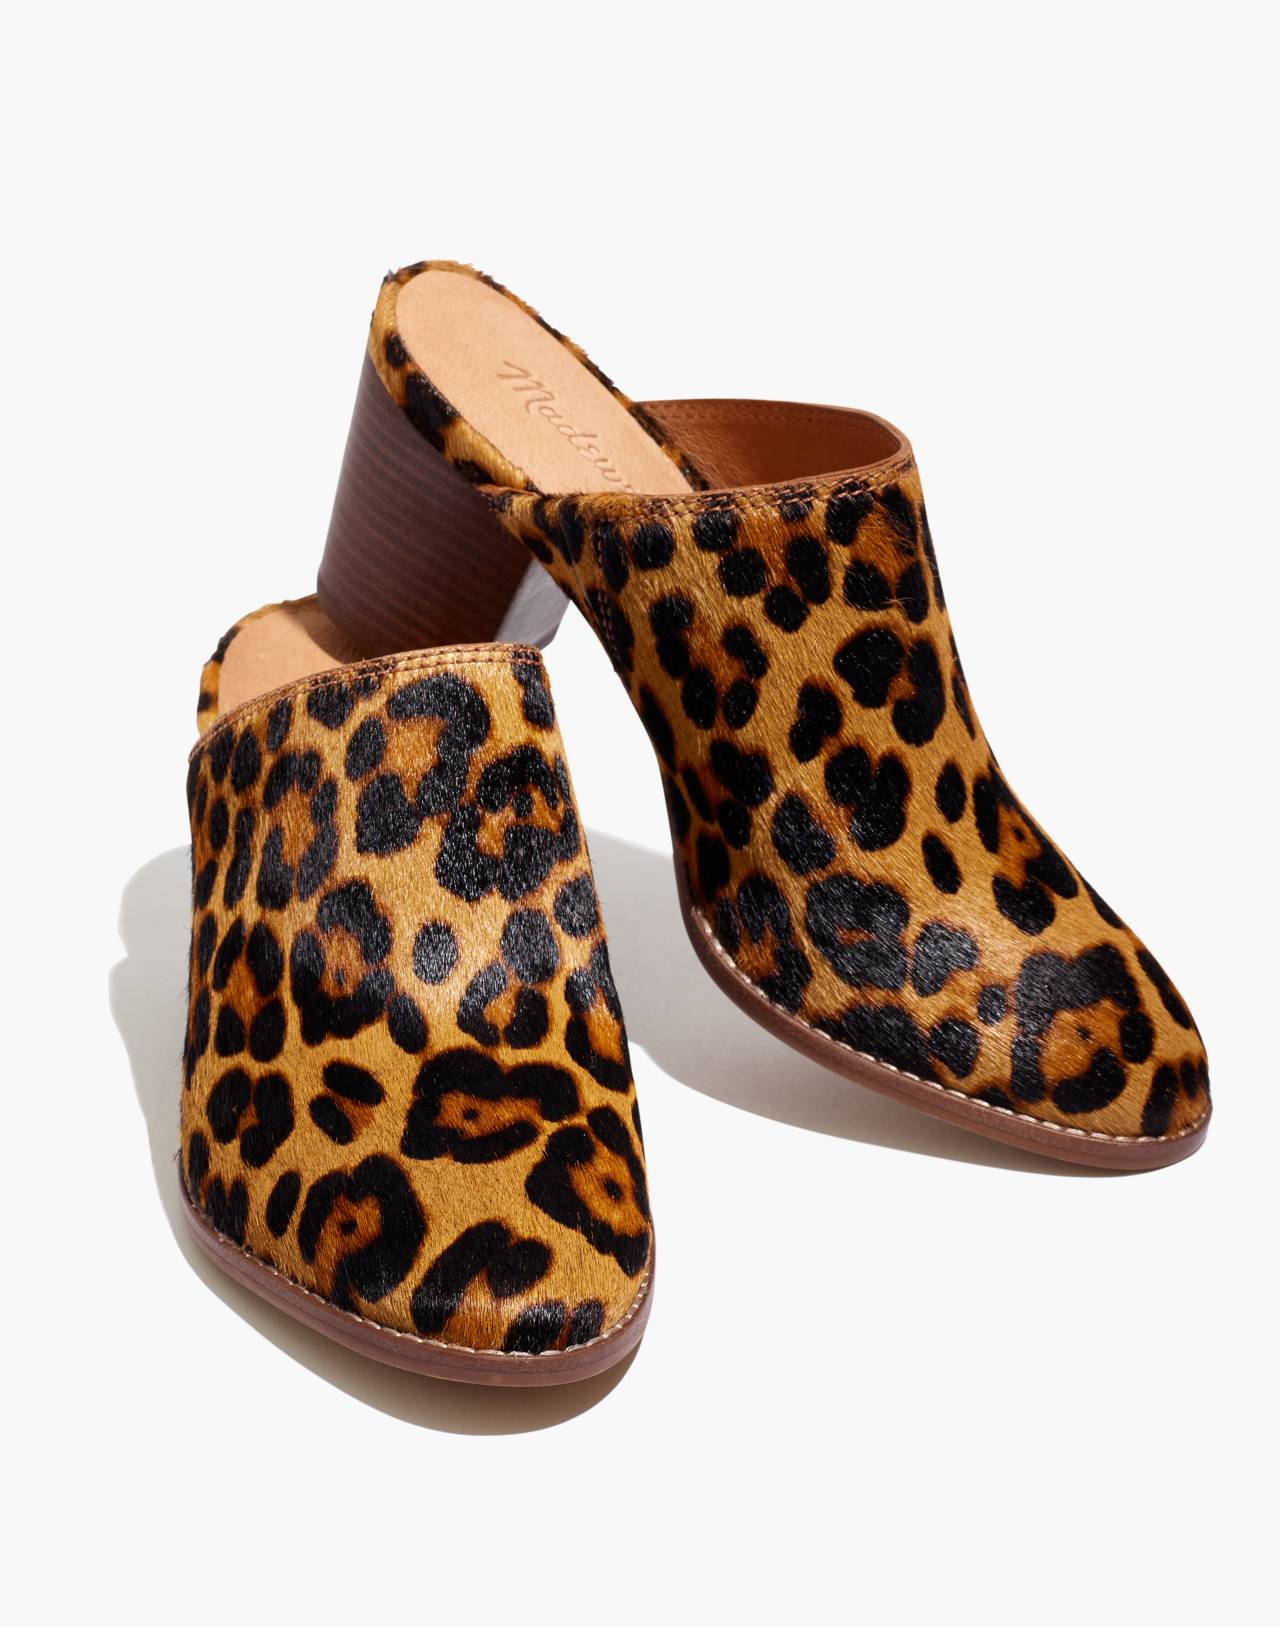 The Harper Mule in Leopard Calf Hair in truffle multi image 1